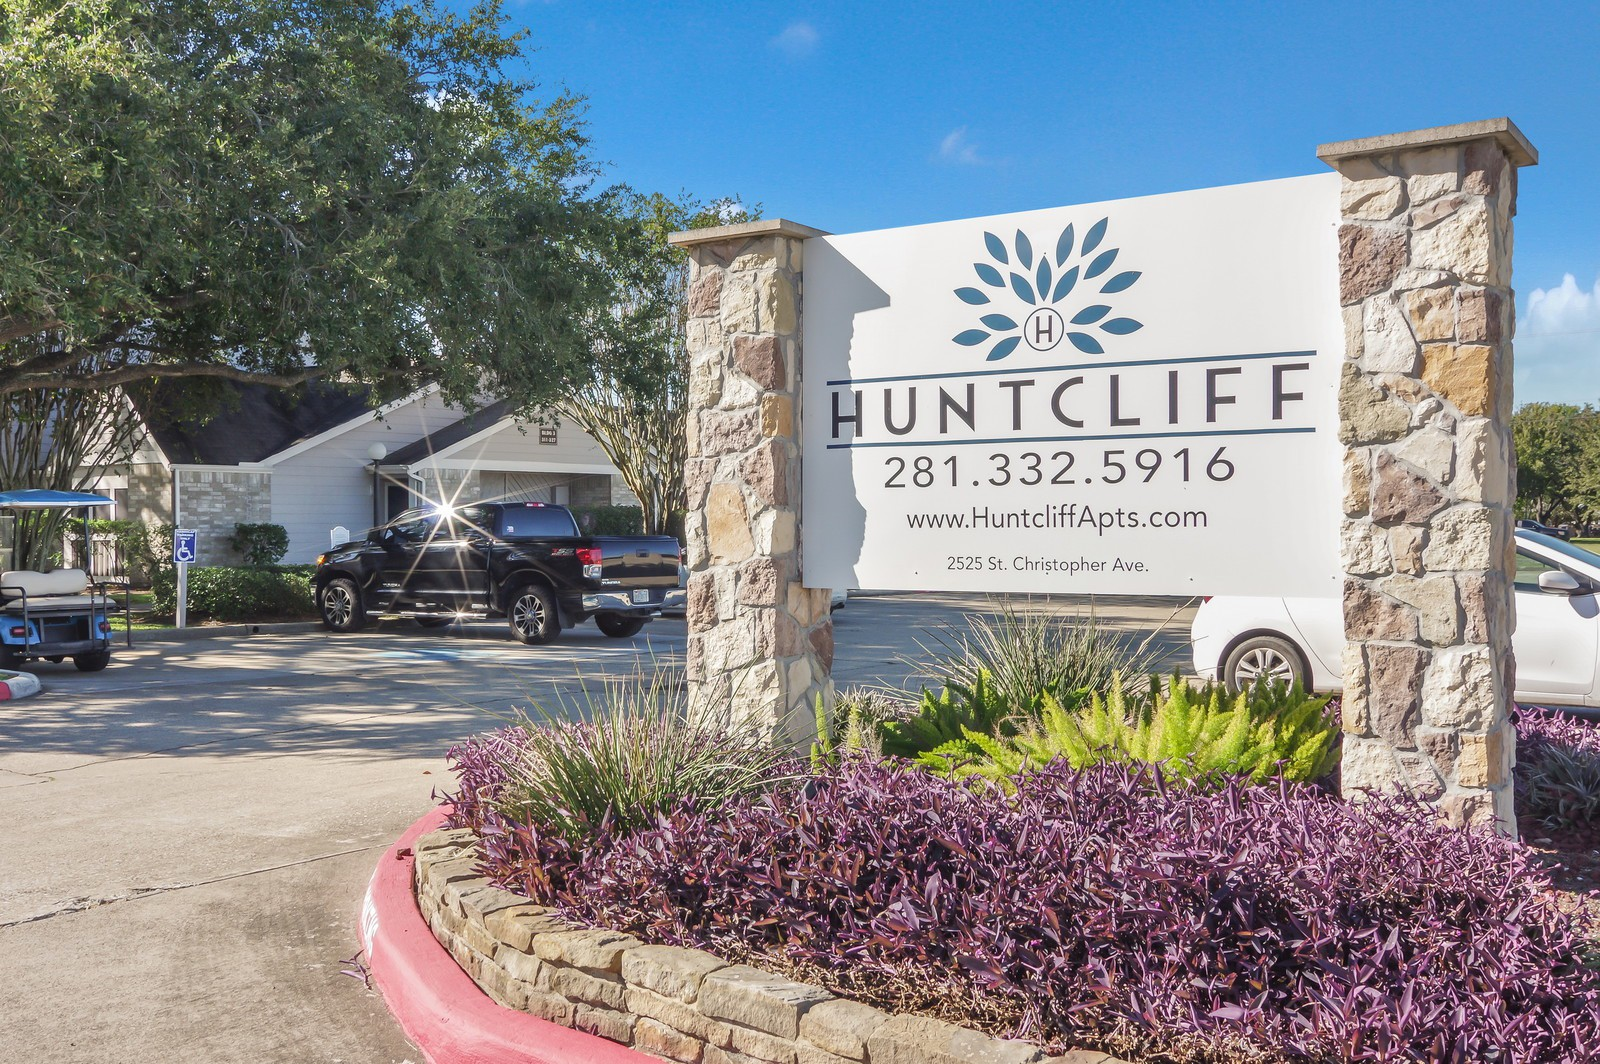 Huntcliff Apartments